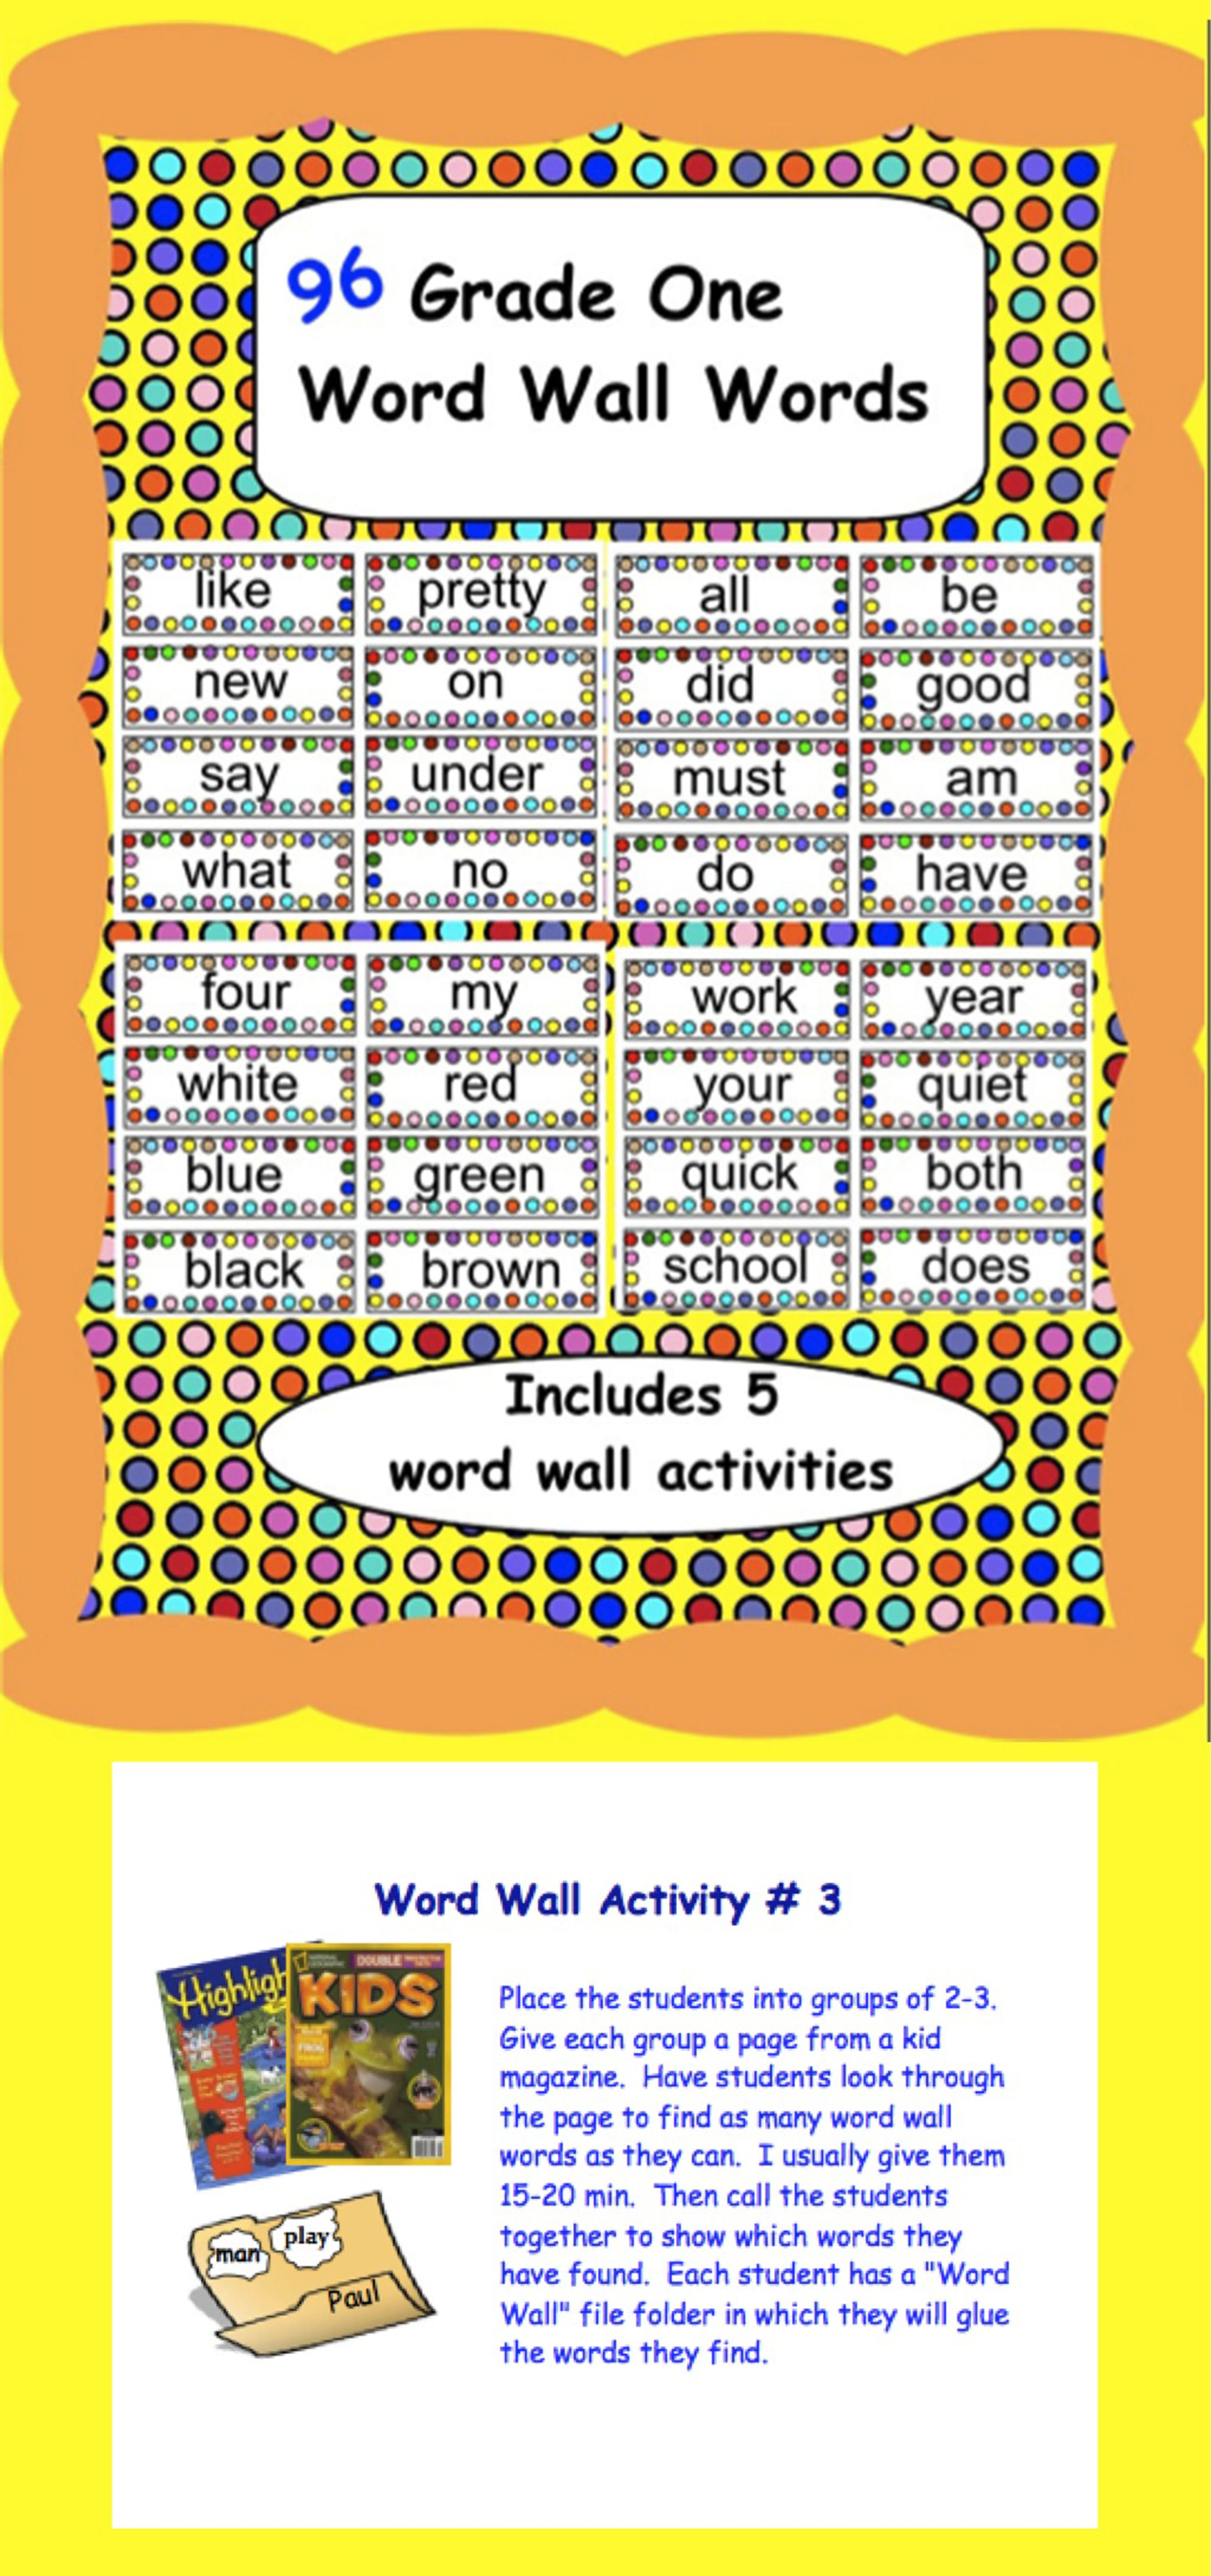 96 Word Wall Words With 5 Activity Ideas